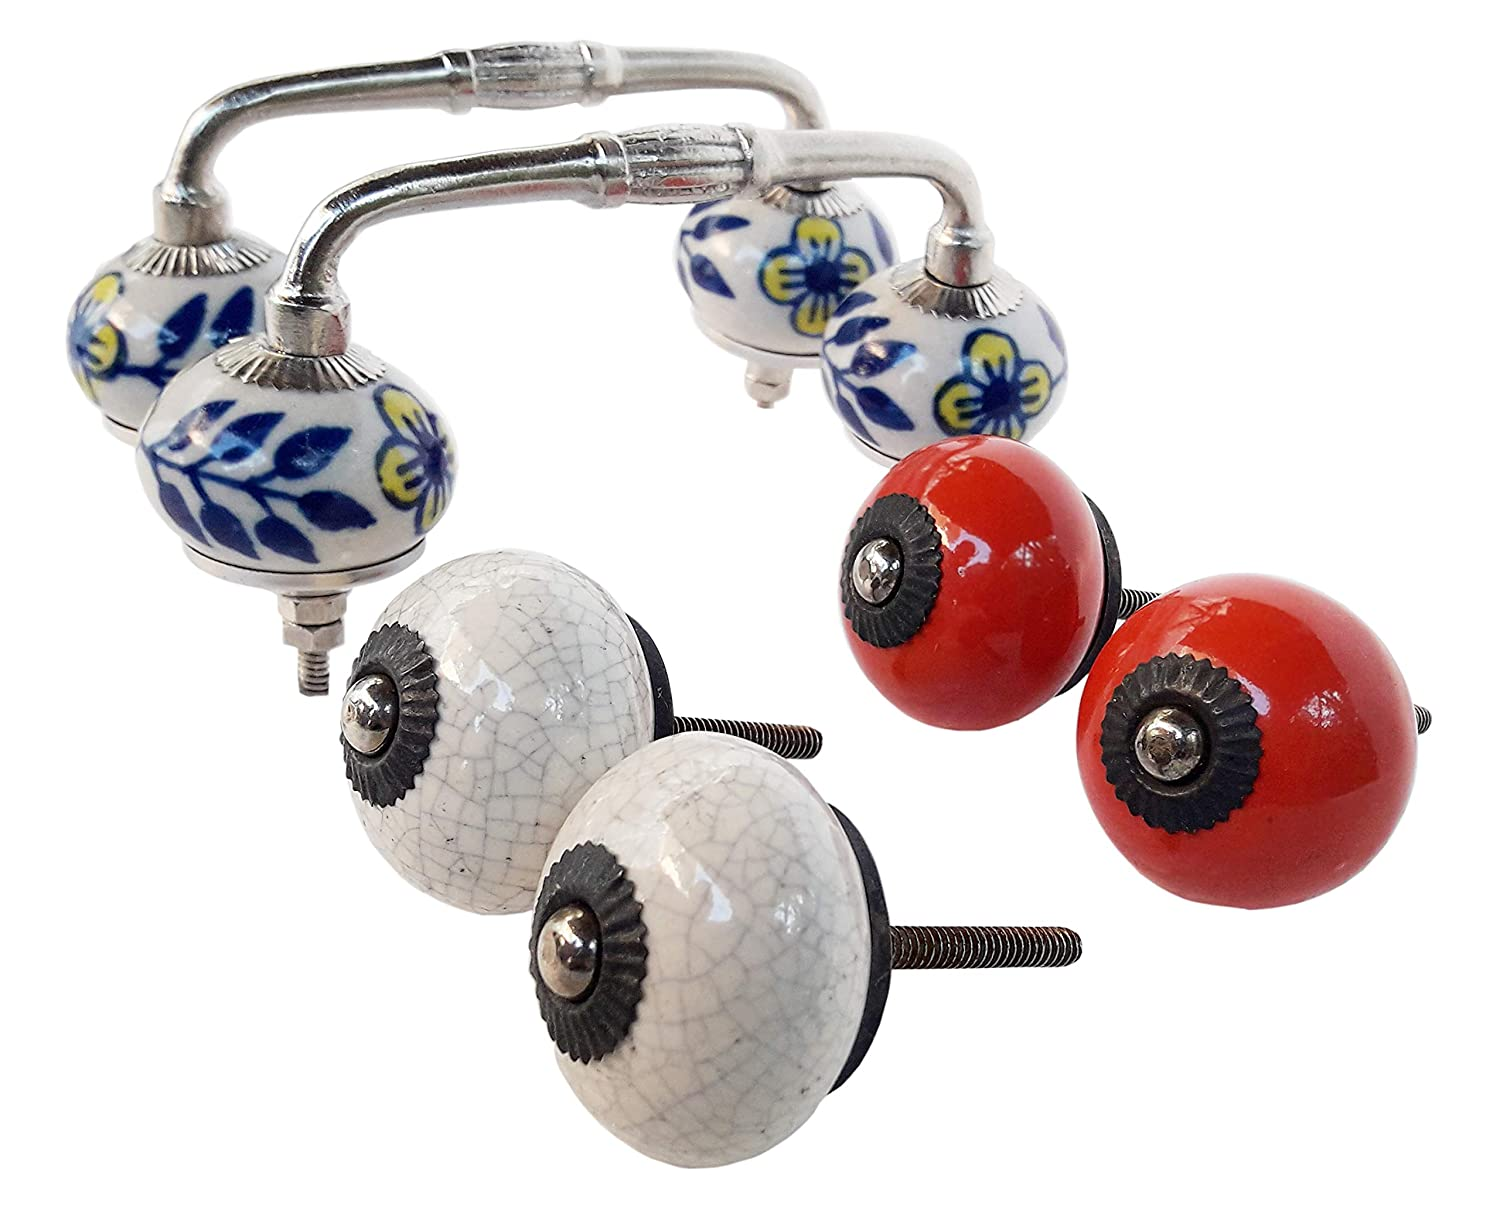 Pulls Rare Hand Painted Ceramic Handle Pulls Cabinet Drawer Pull Indian Ceramic Handle//pulls Knobs Handmade Multicolor 2 Hnadle and 4 Knobs Door Handle